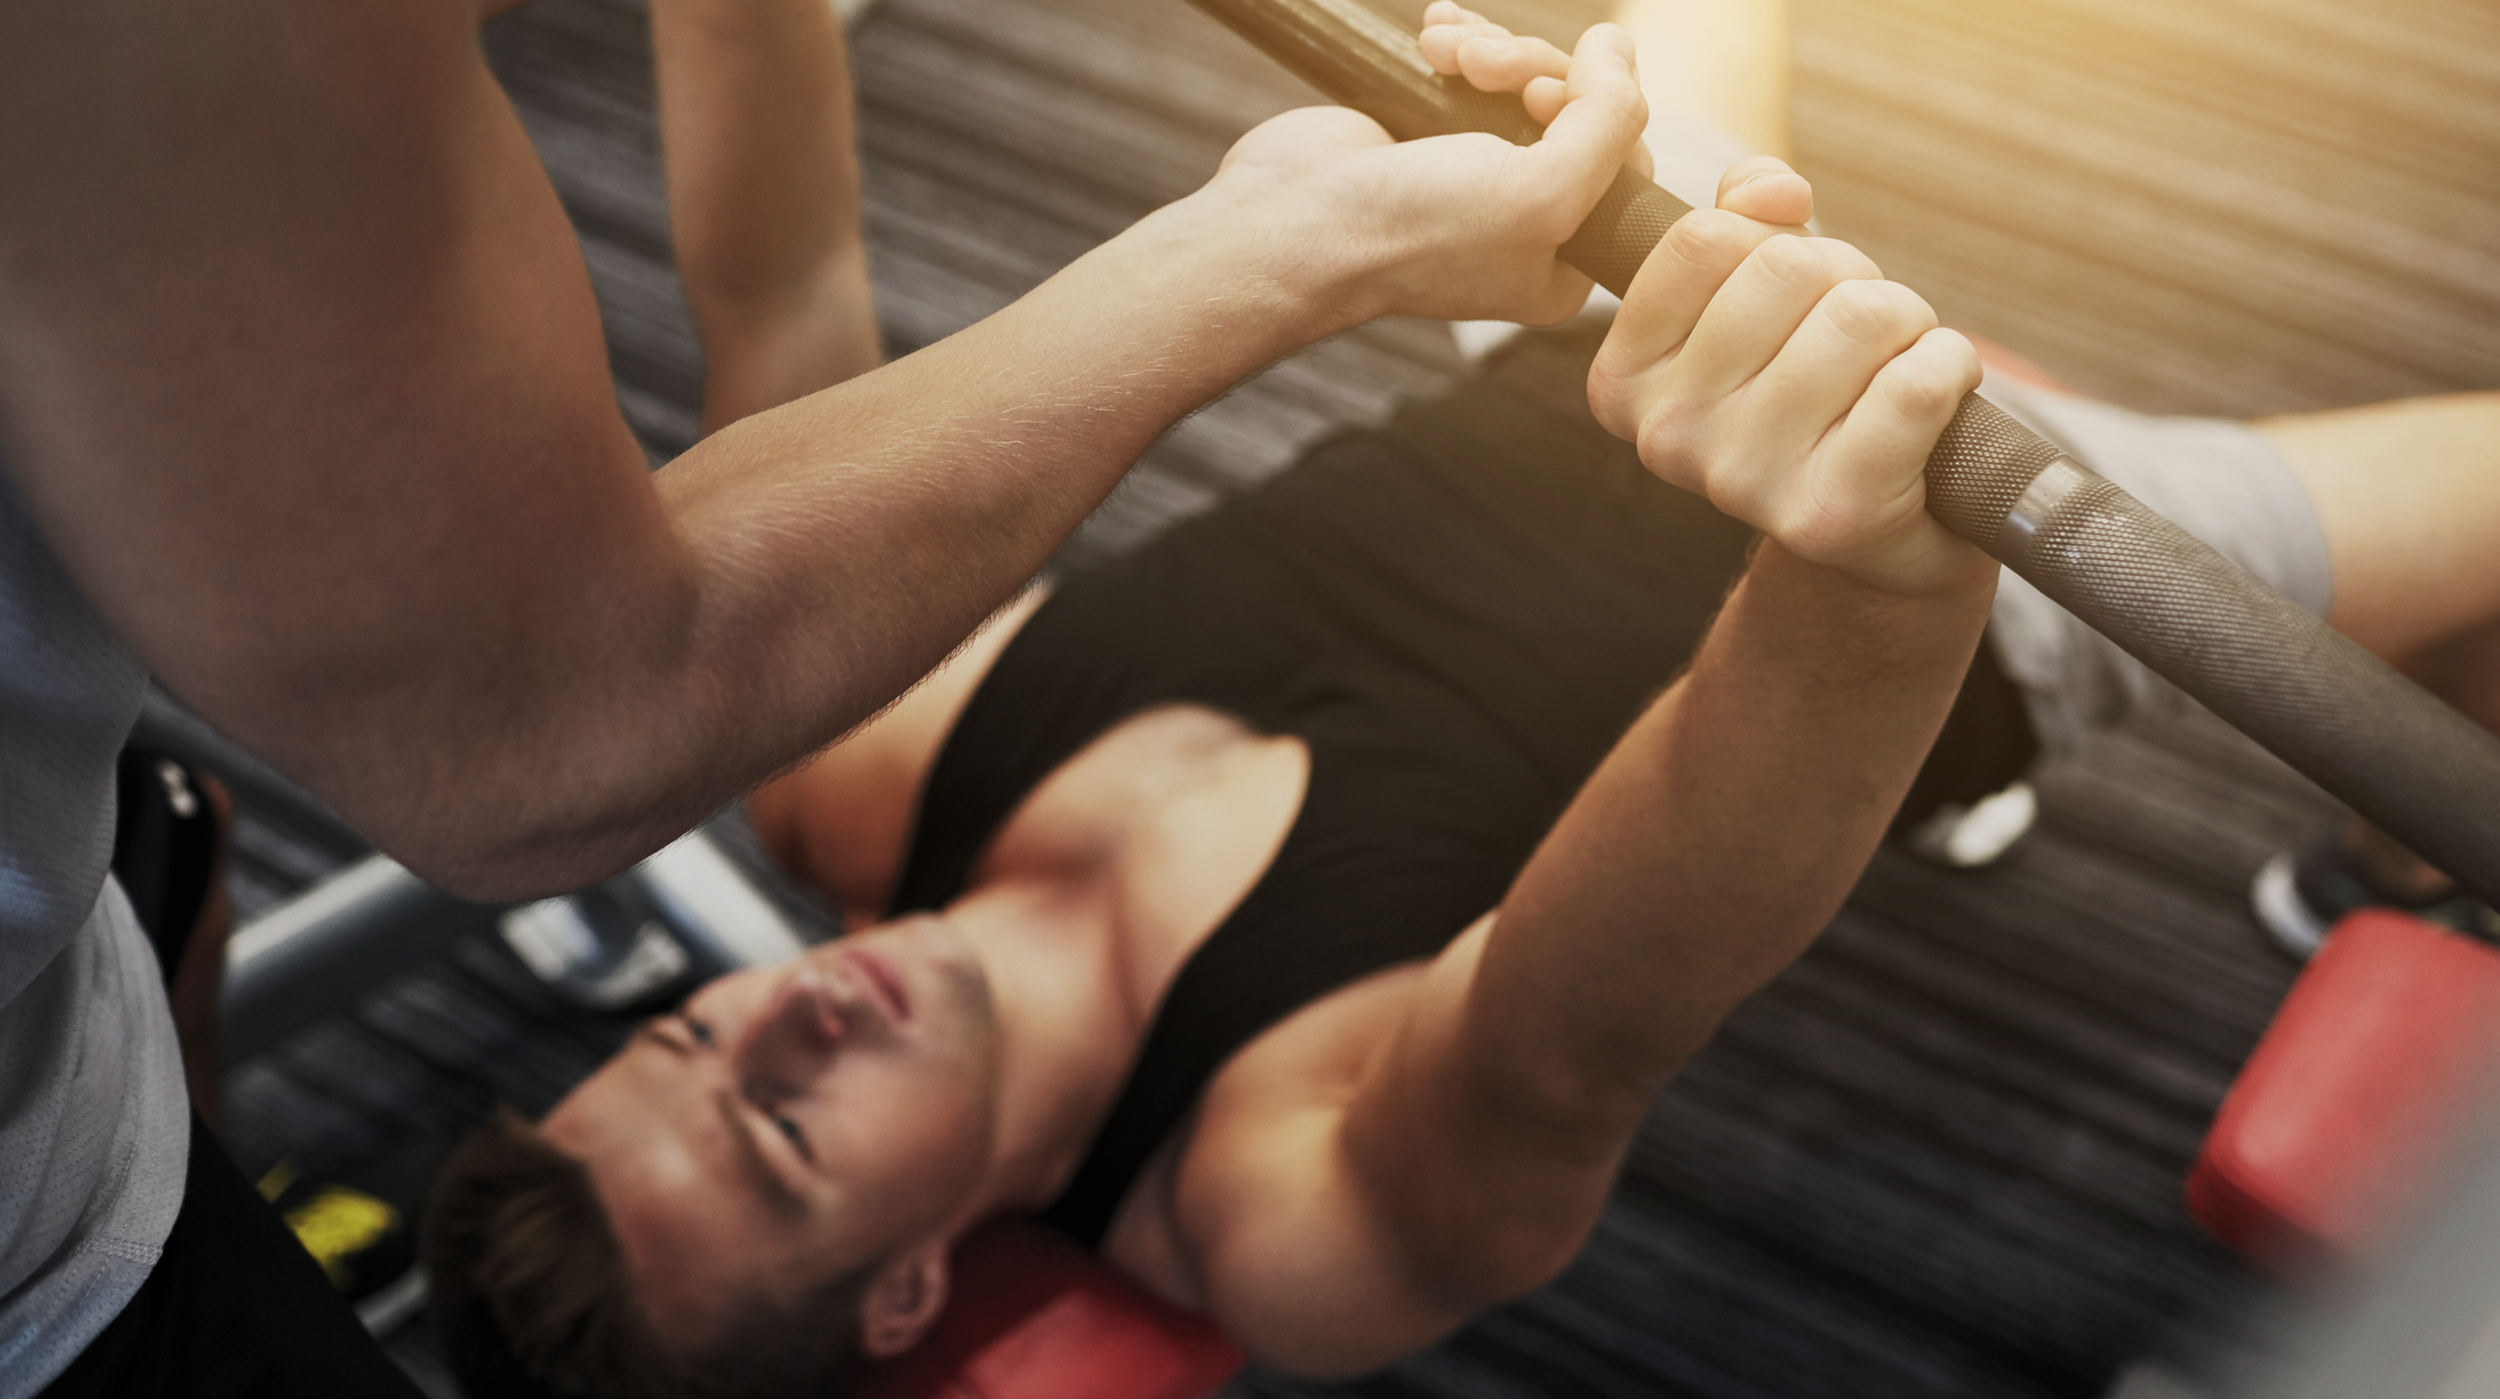 The Effects Lifting Weights Has on Your Health